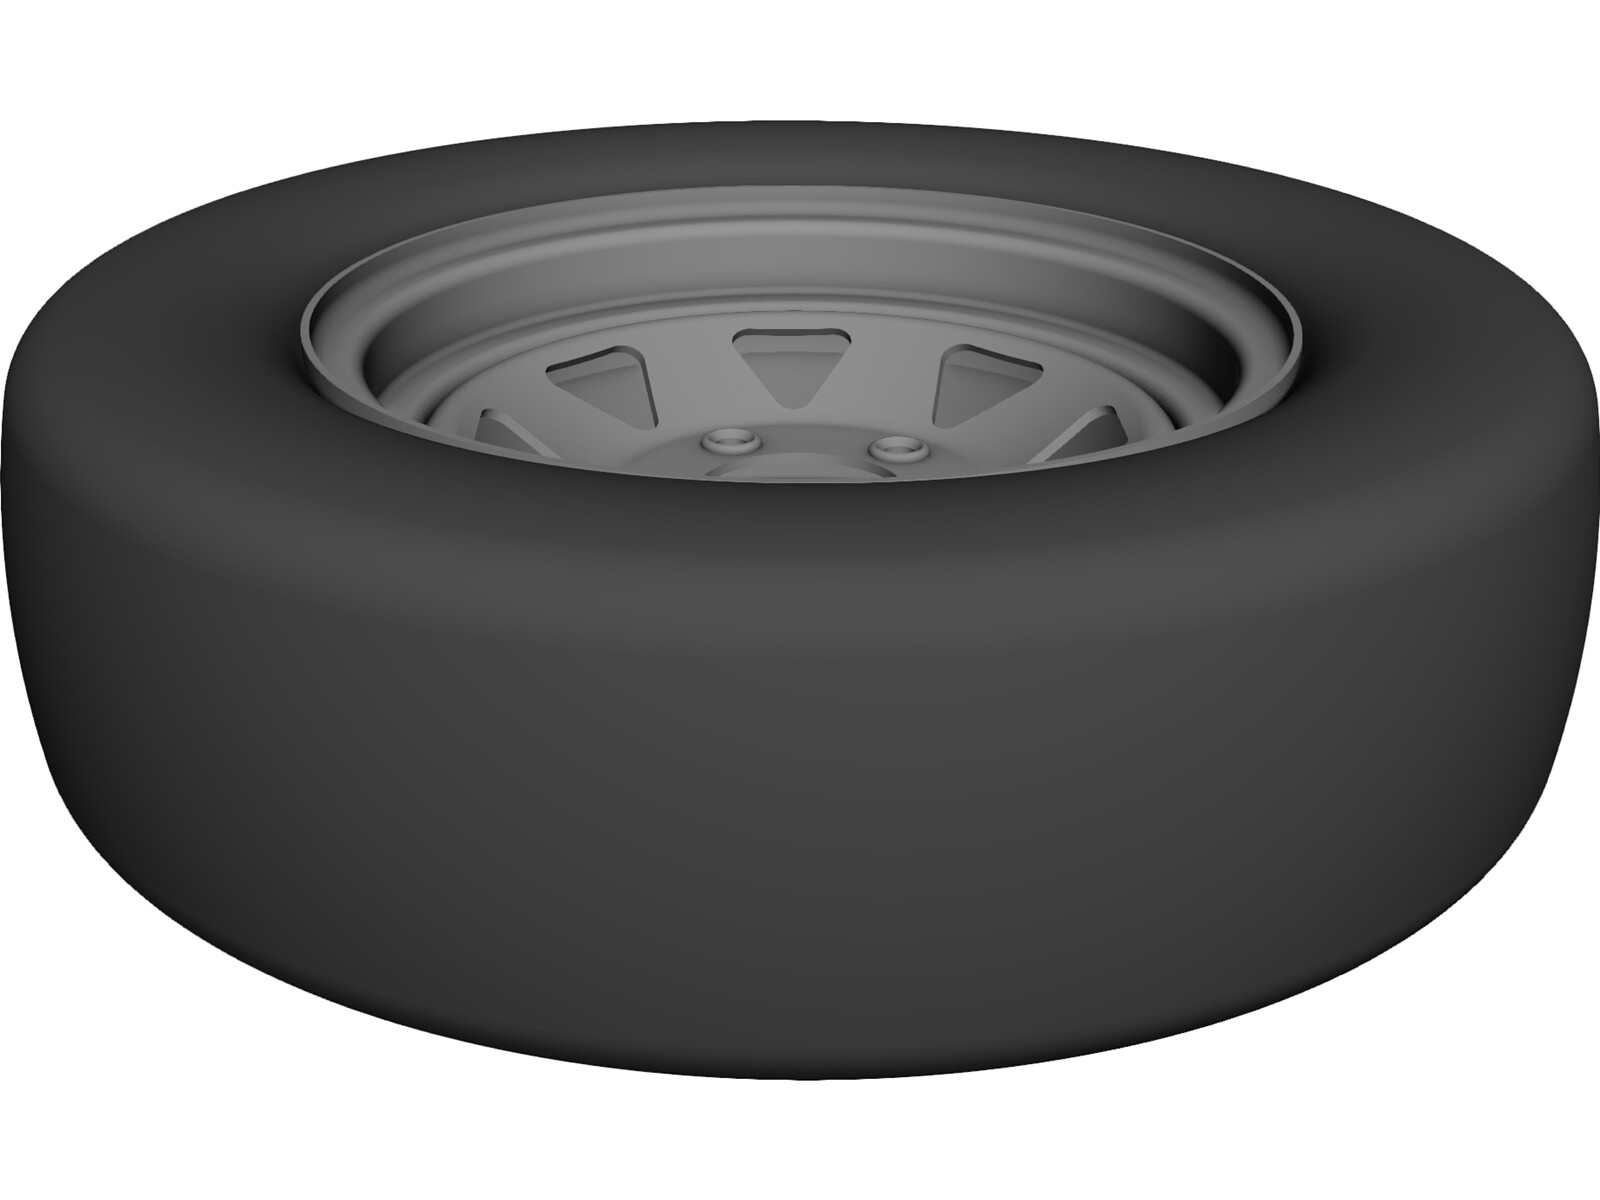 Trailer Wheel 14 Inch 3D CAD Model